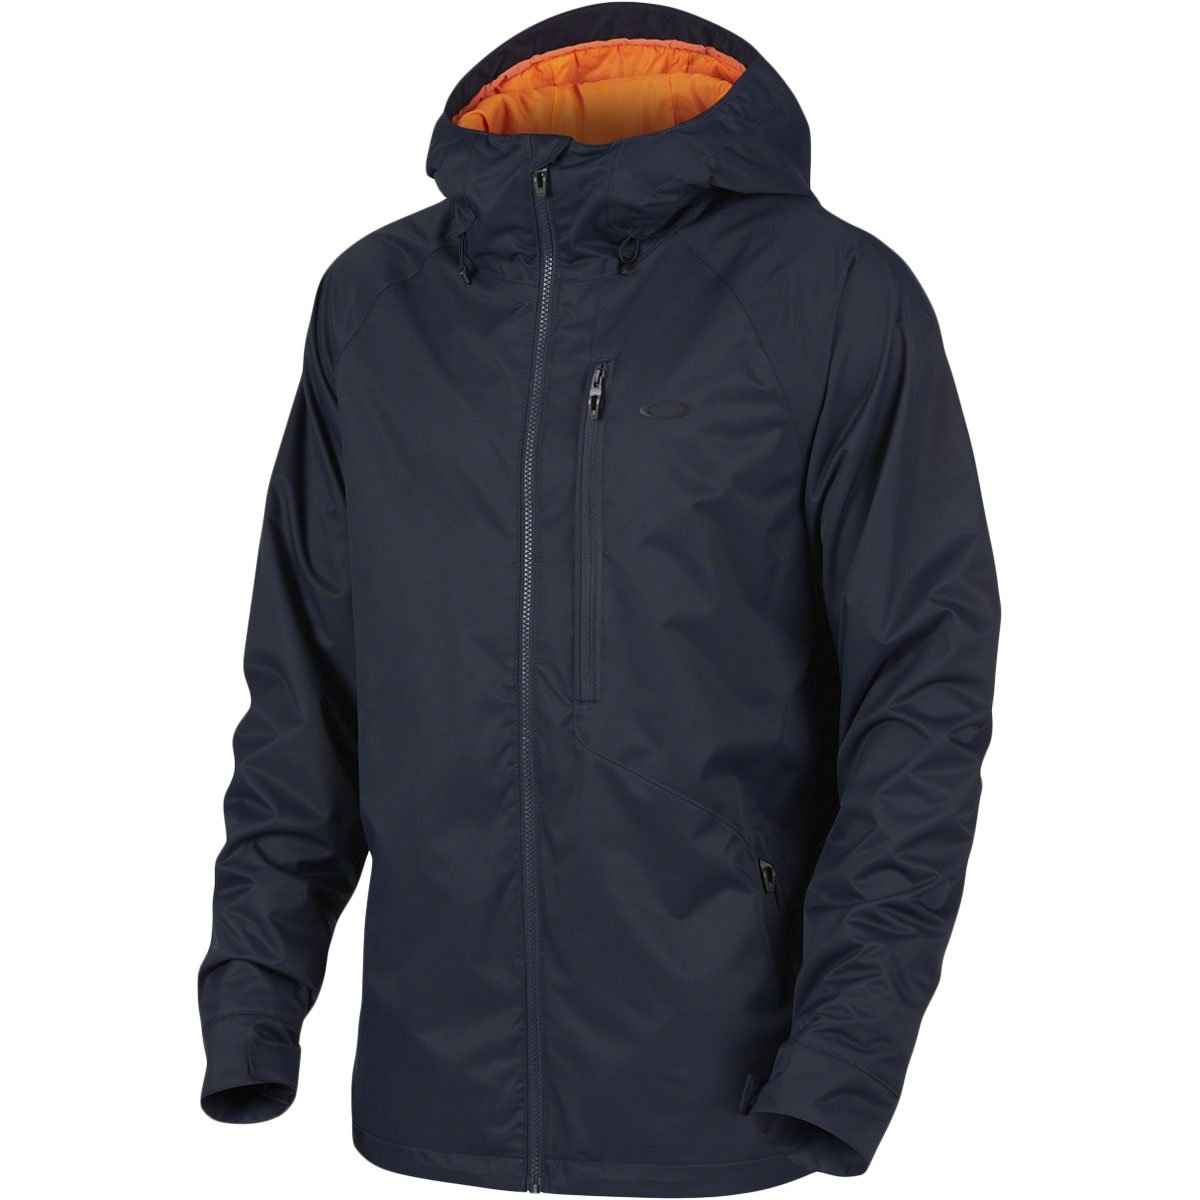 Oakley Jackpot 10K Bzs Jacket, FATHOM, Medium